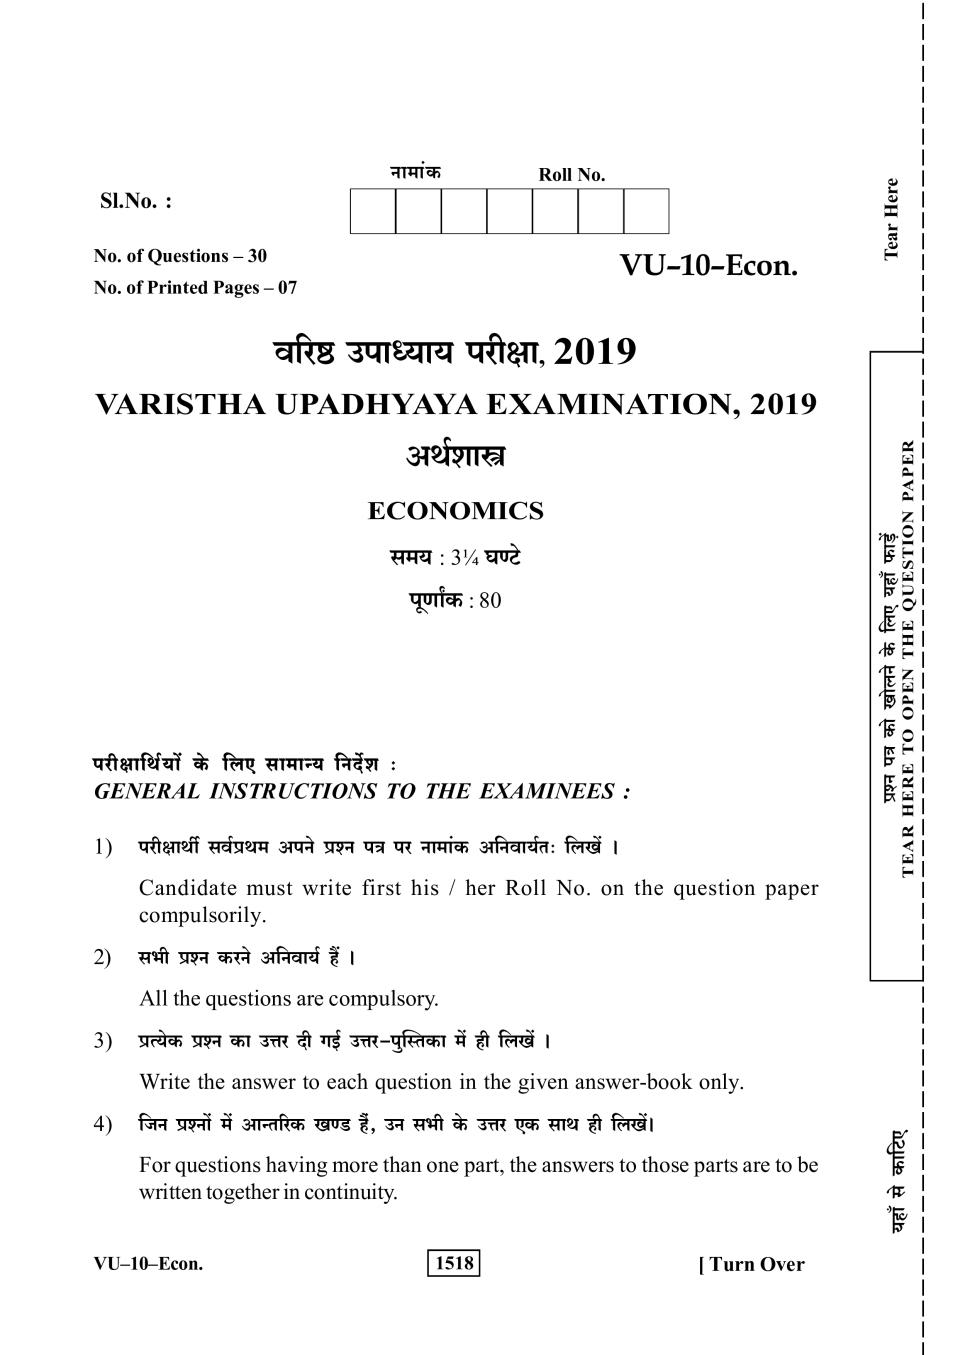 Rajasthan Board V Upadhyay Economics Question Paper